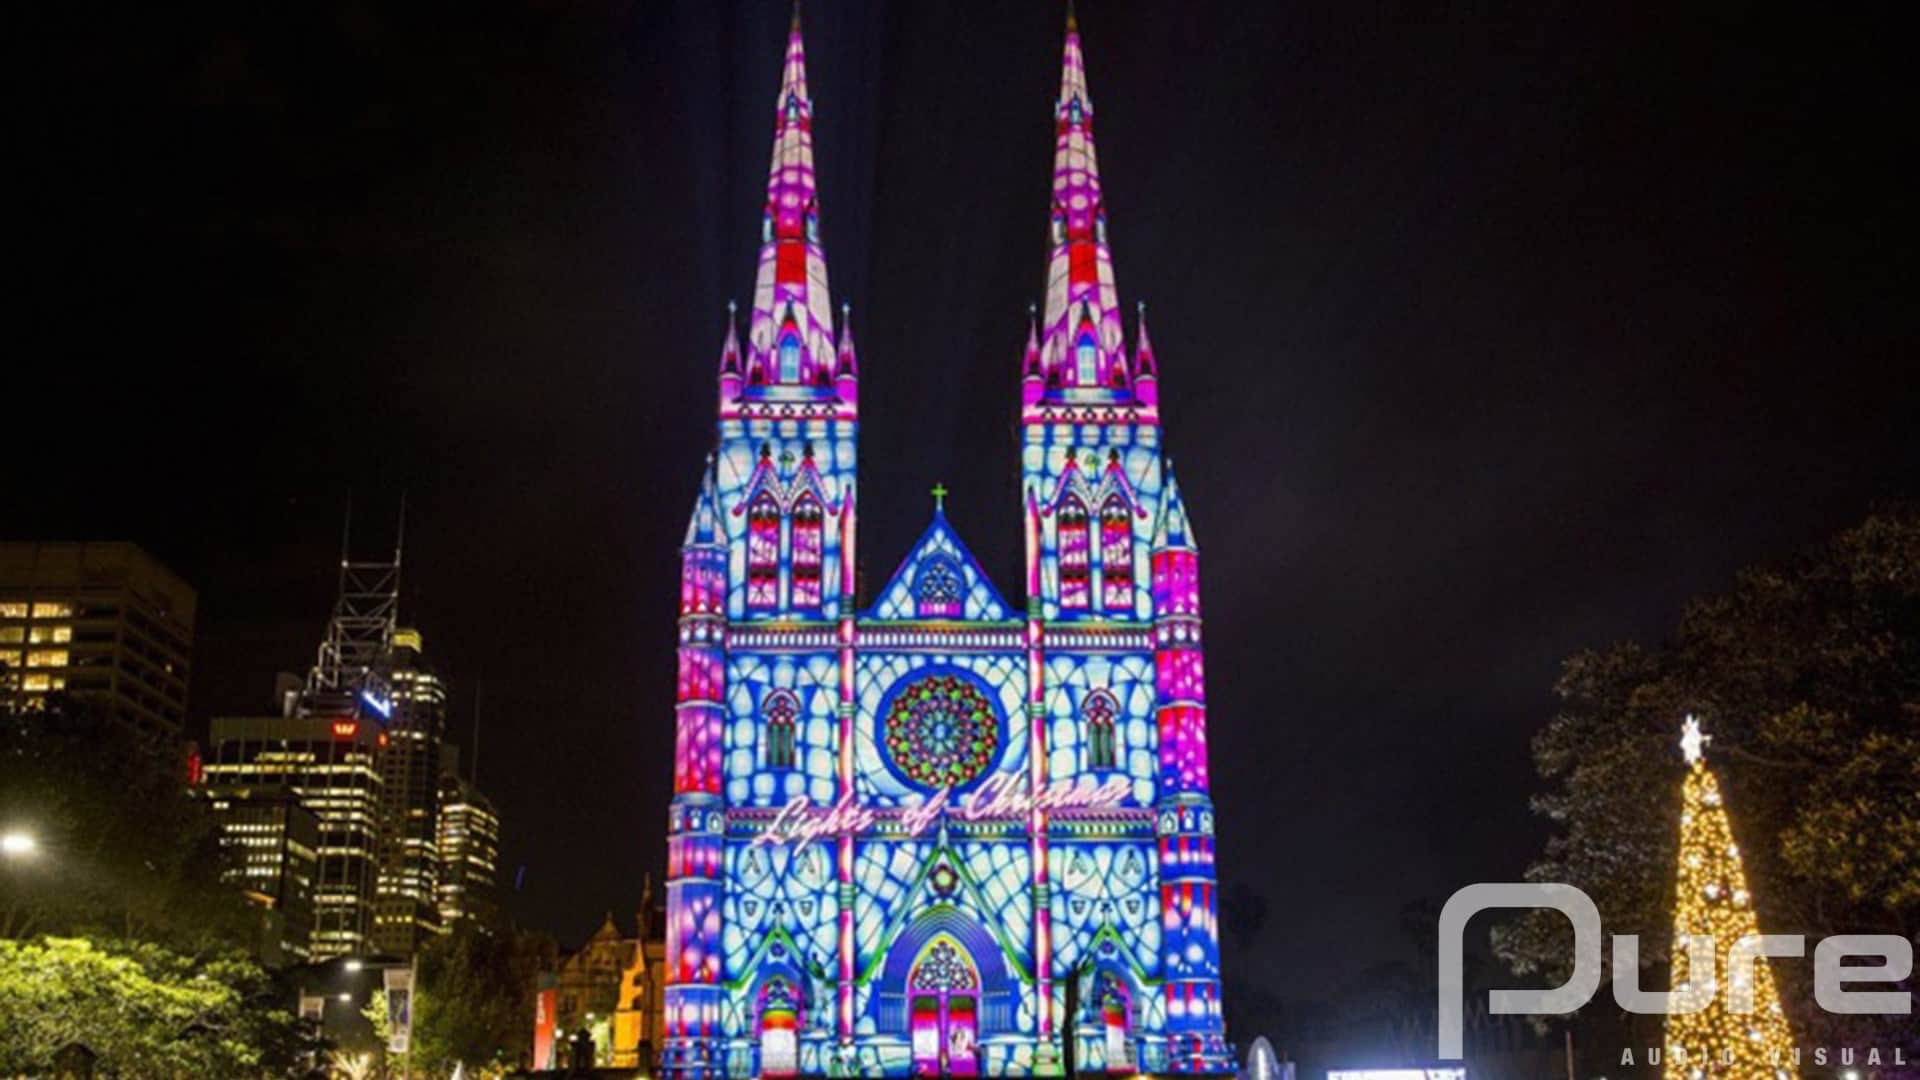 audio visual projection mapping services